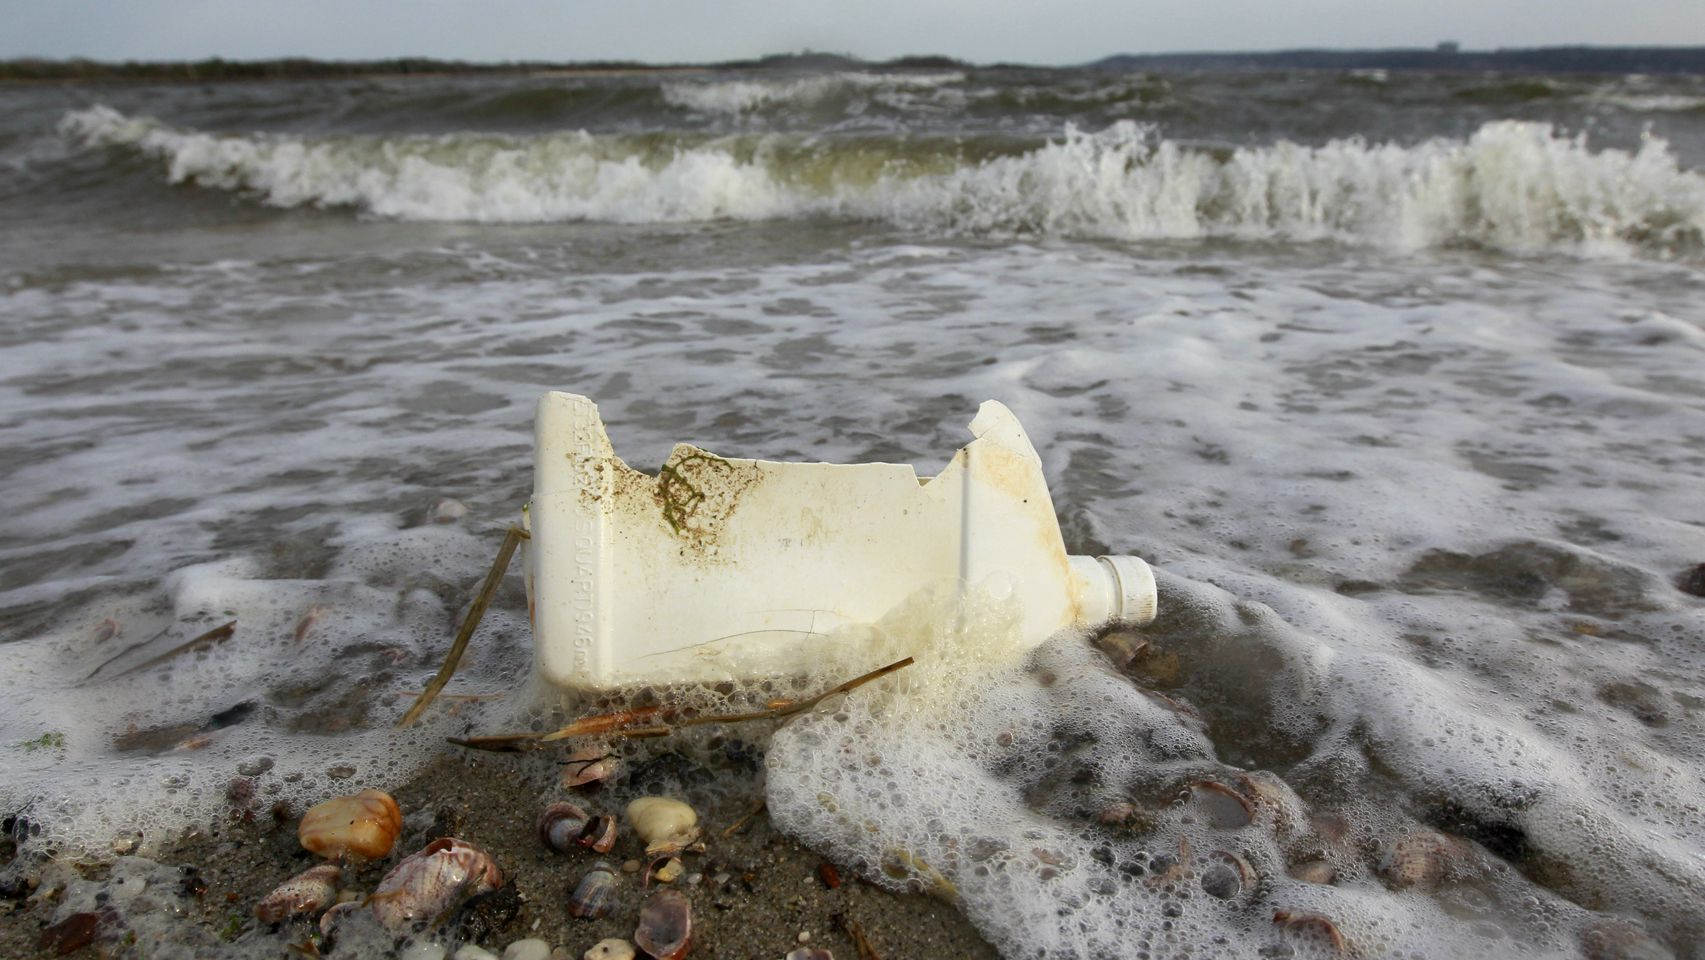 In this April 18, 2011 photo, a plastic container litters the beach in Sandy Hook, N.J. Clean Ocean Action, the environmental group that has been doing beach sweeps for 25 years, says in a report to be released Tuesday, April 19, 2011 that an all-time high of 475,321 pieces of litter were removed from the state's 127-mile shoreline last year. The 8,372 people who participated in spring and fall cleanups also set a record. (AP Photo/Julio Cortez